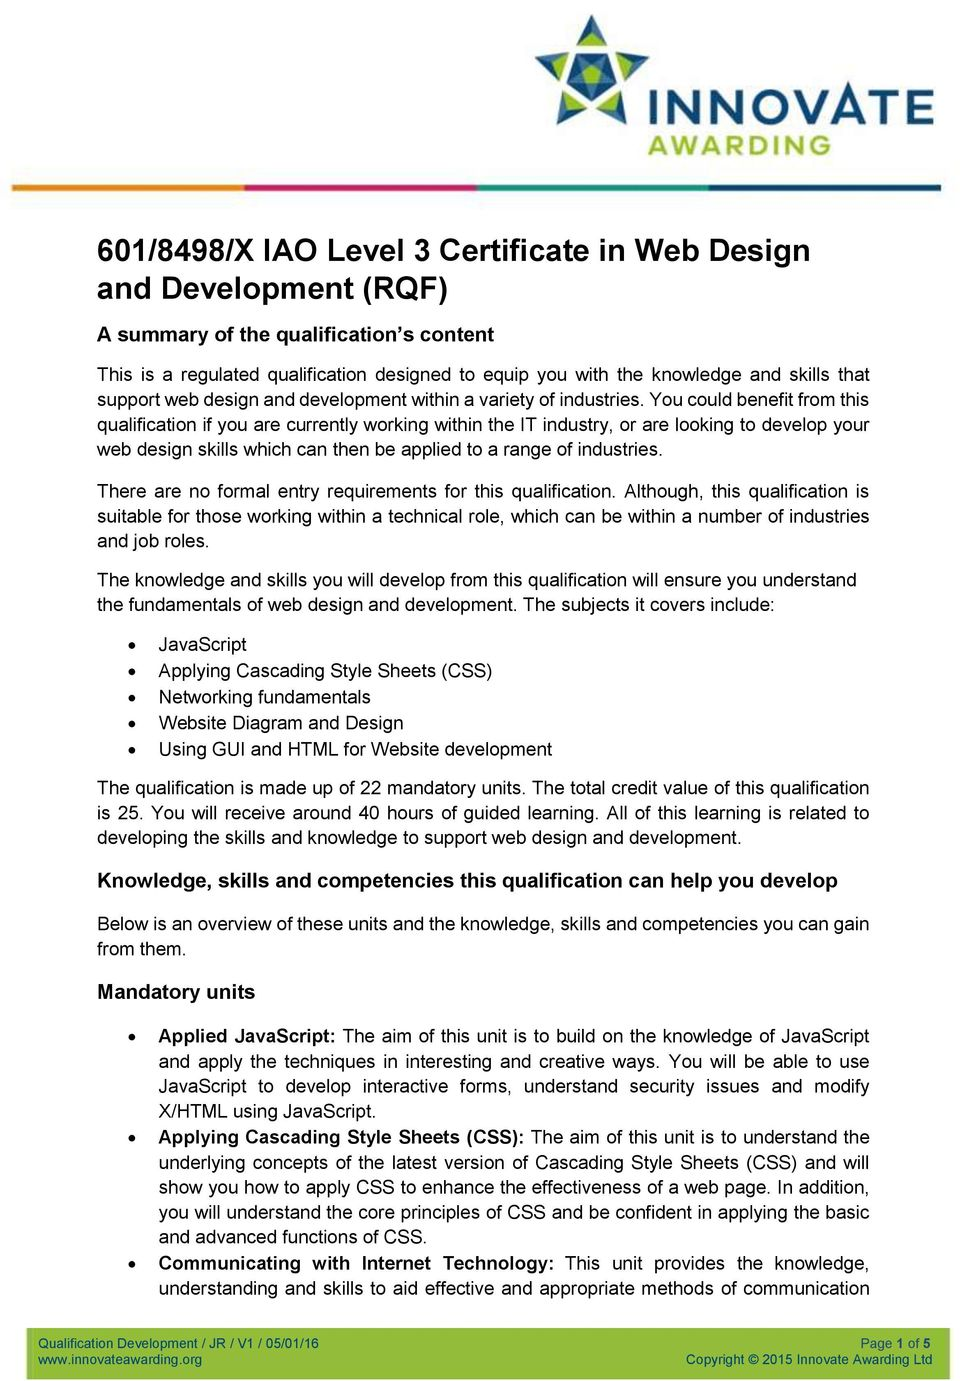 You could benefit from this qualification if you are currently working within the IT industry, or are looking to develop your web design skills which can then be applied to a range of industries.